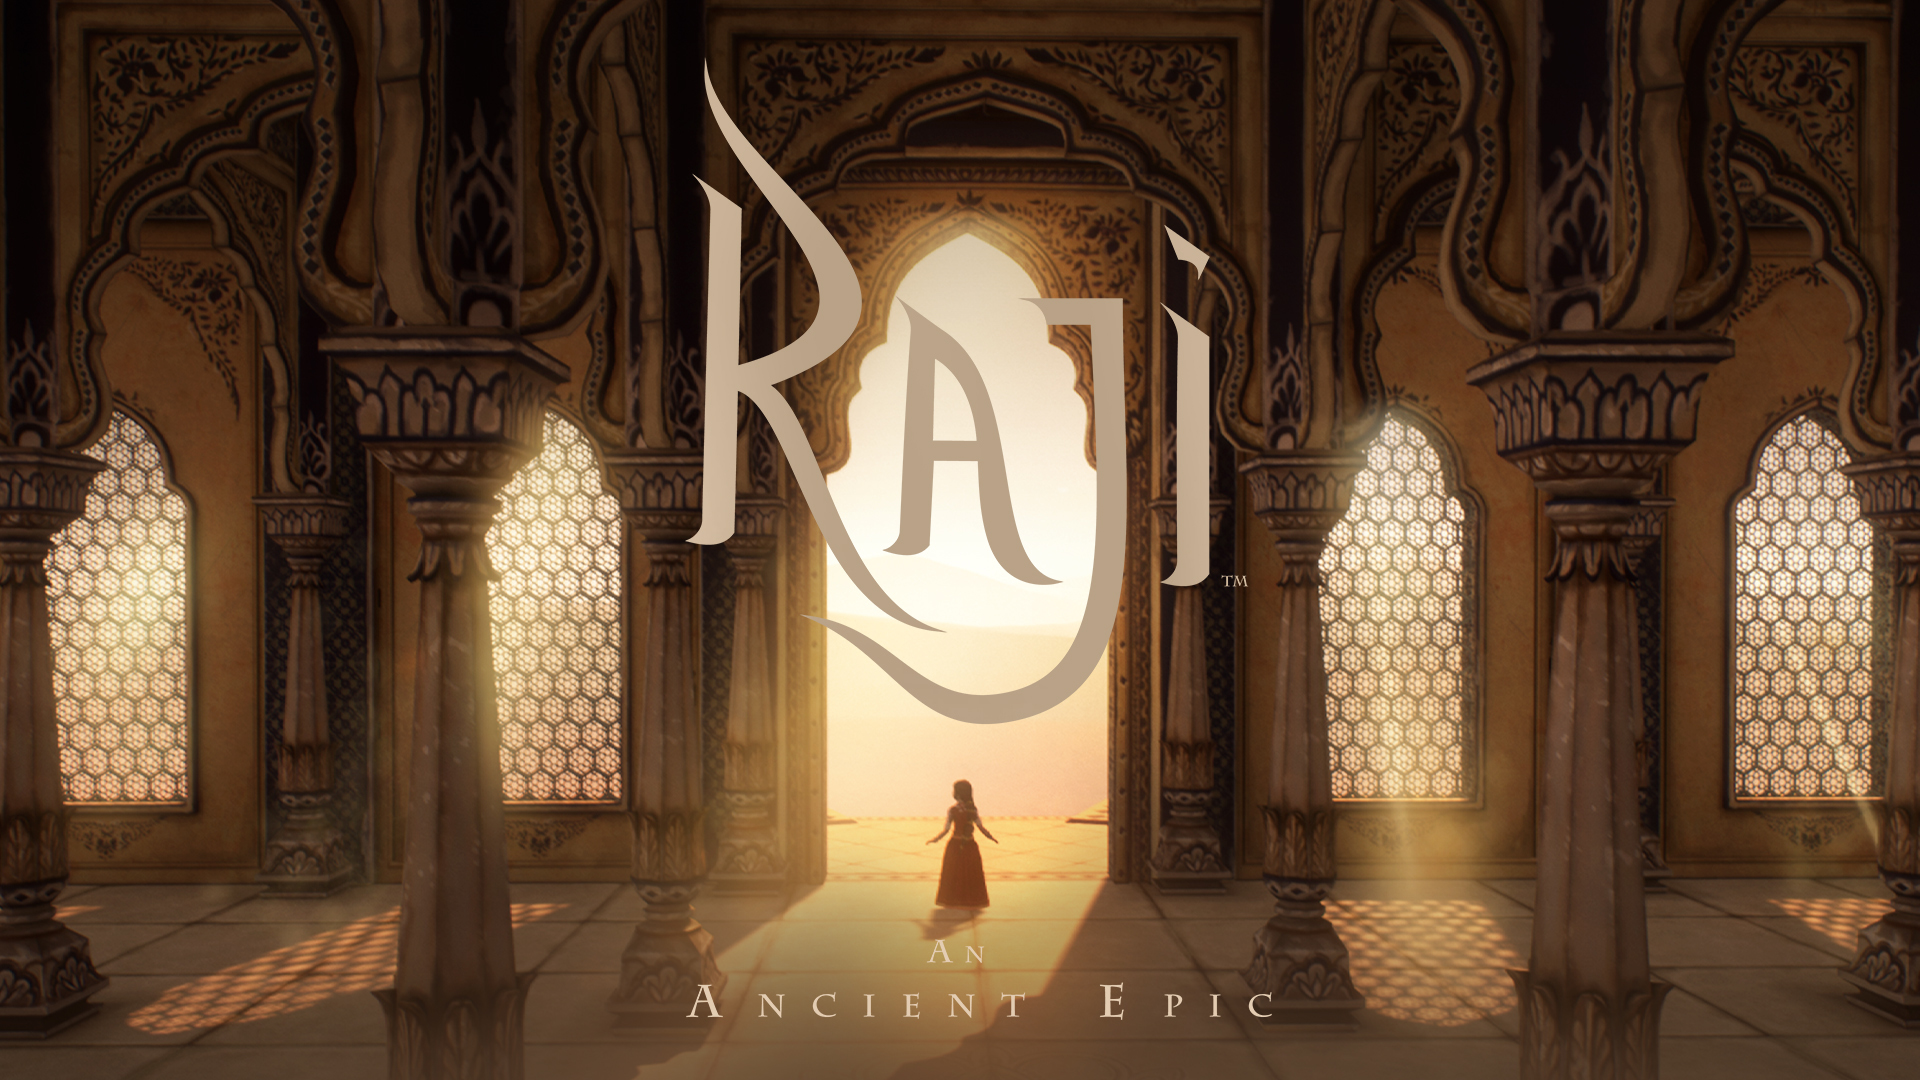 Battle Ancient Evil and Explore Indian Folklore in Raji: an Ancient Epic (PC, Xbox One, and PS4)